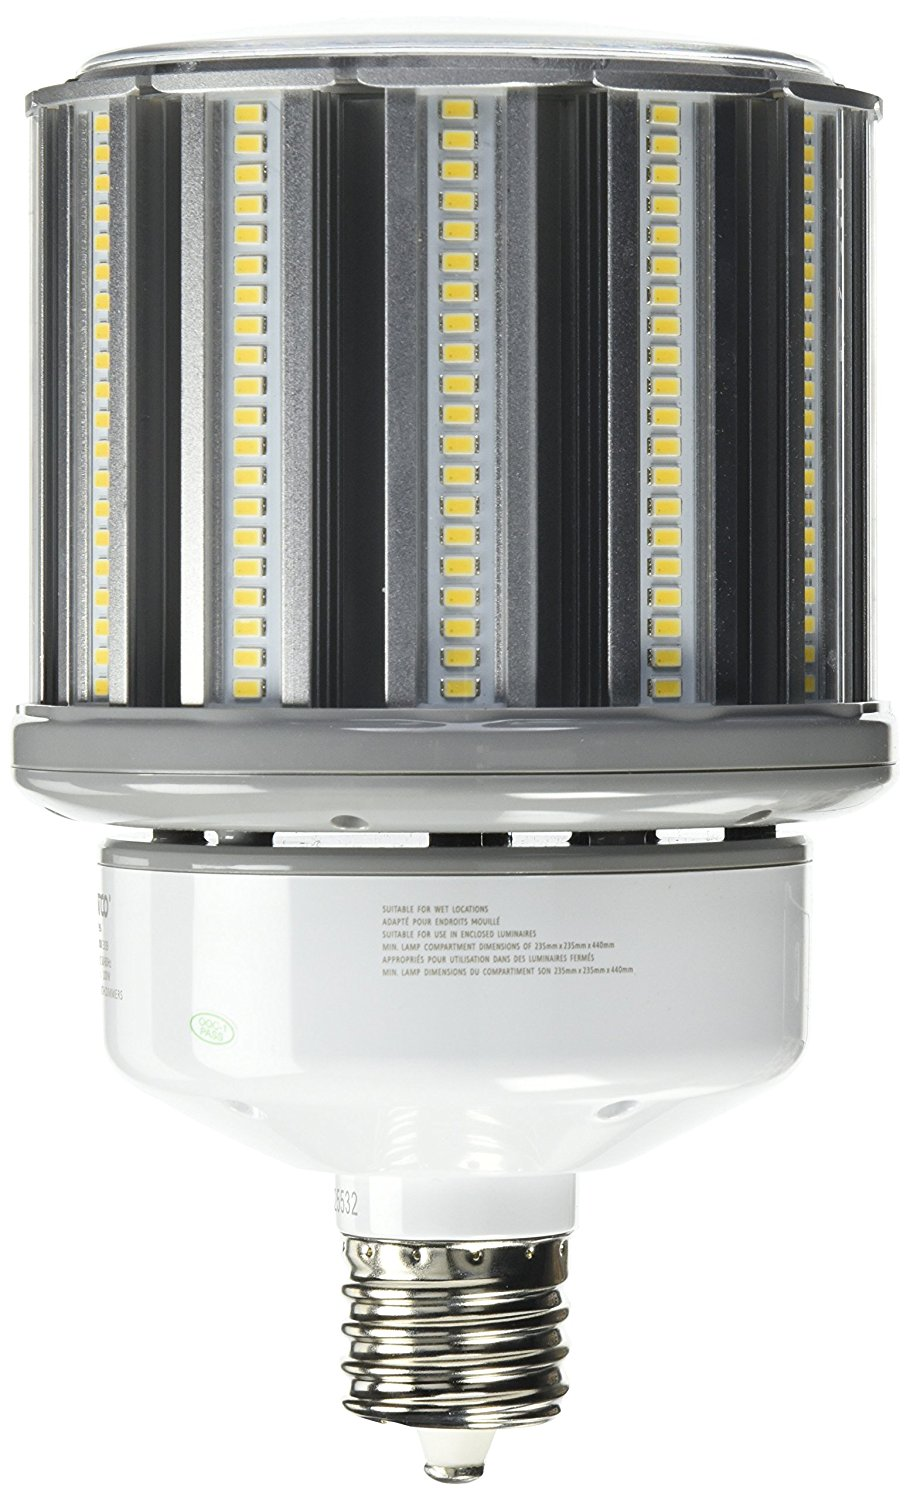 Satco S9396 5000K Mogul Extended Base 100-277V 100W LED HID Replacement